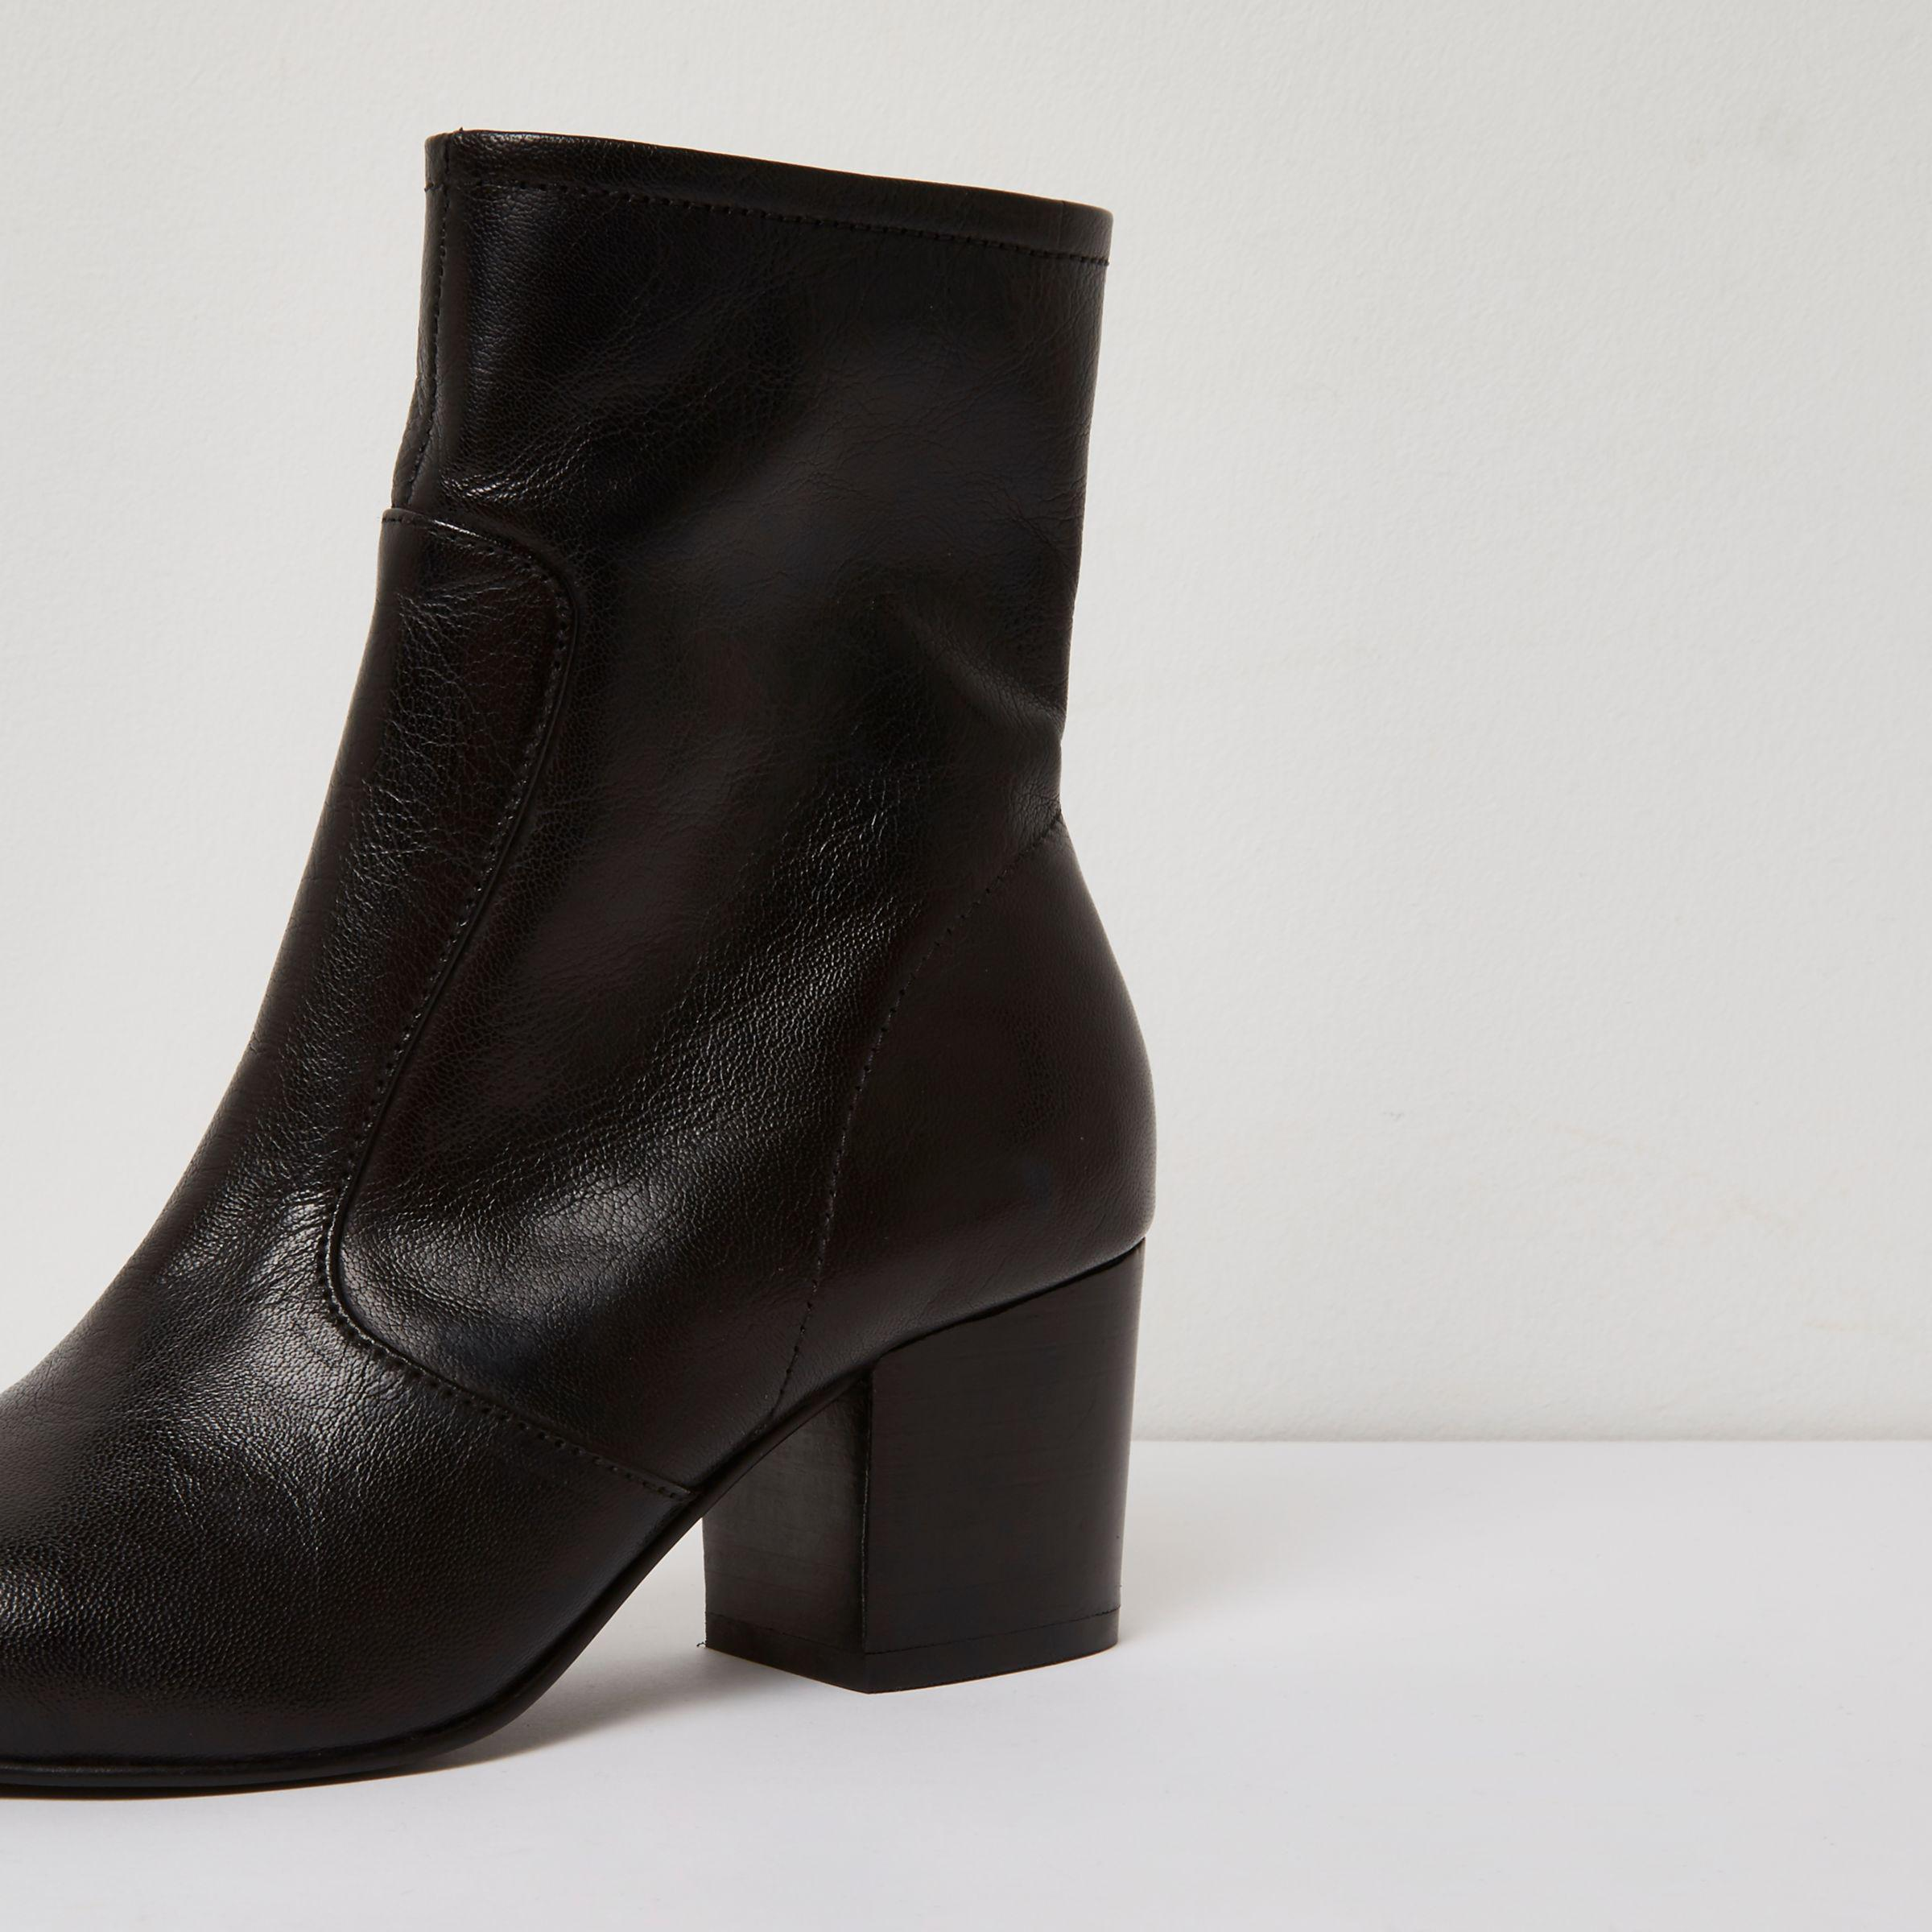 ad5b54ede9ad Lyst - River Island Black Leather Sock Block Heel Ankle Boots in Black